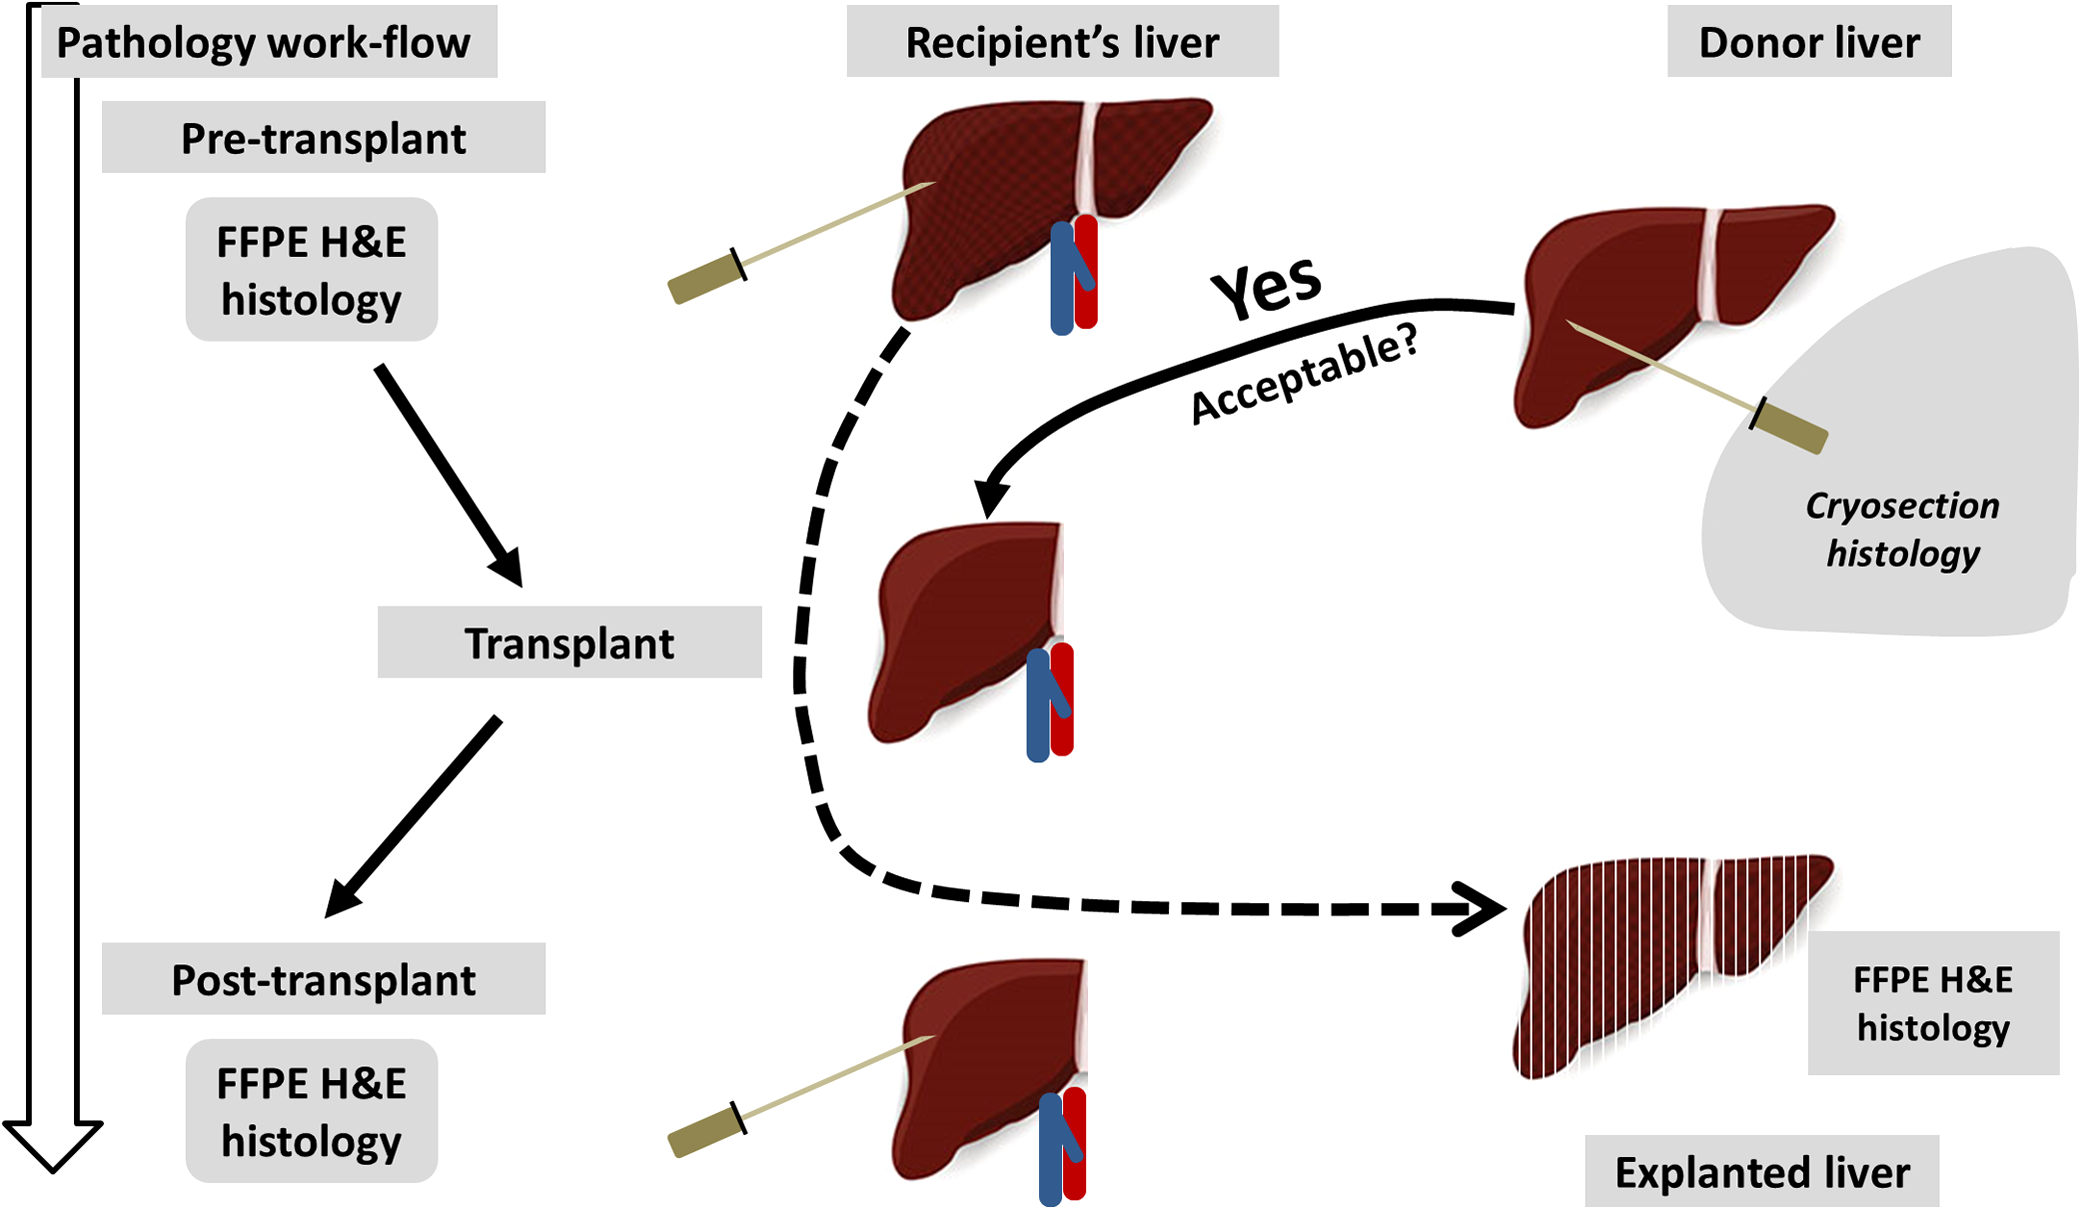 Perspective Review On Solid Organ Transplant Needs In Point Of Care 2009 Ford F 150 Wiring Schematic Mas Post Pathology Examines The Allograft Liver To Support Clinical Management Survival And Long Term Functioning